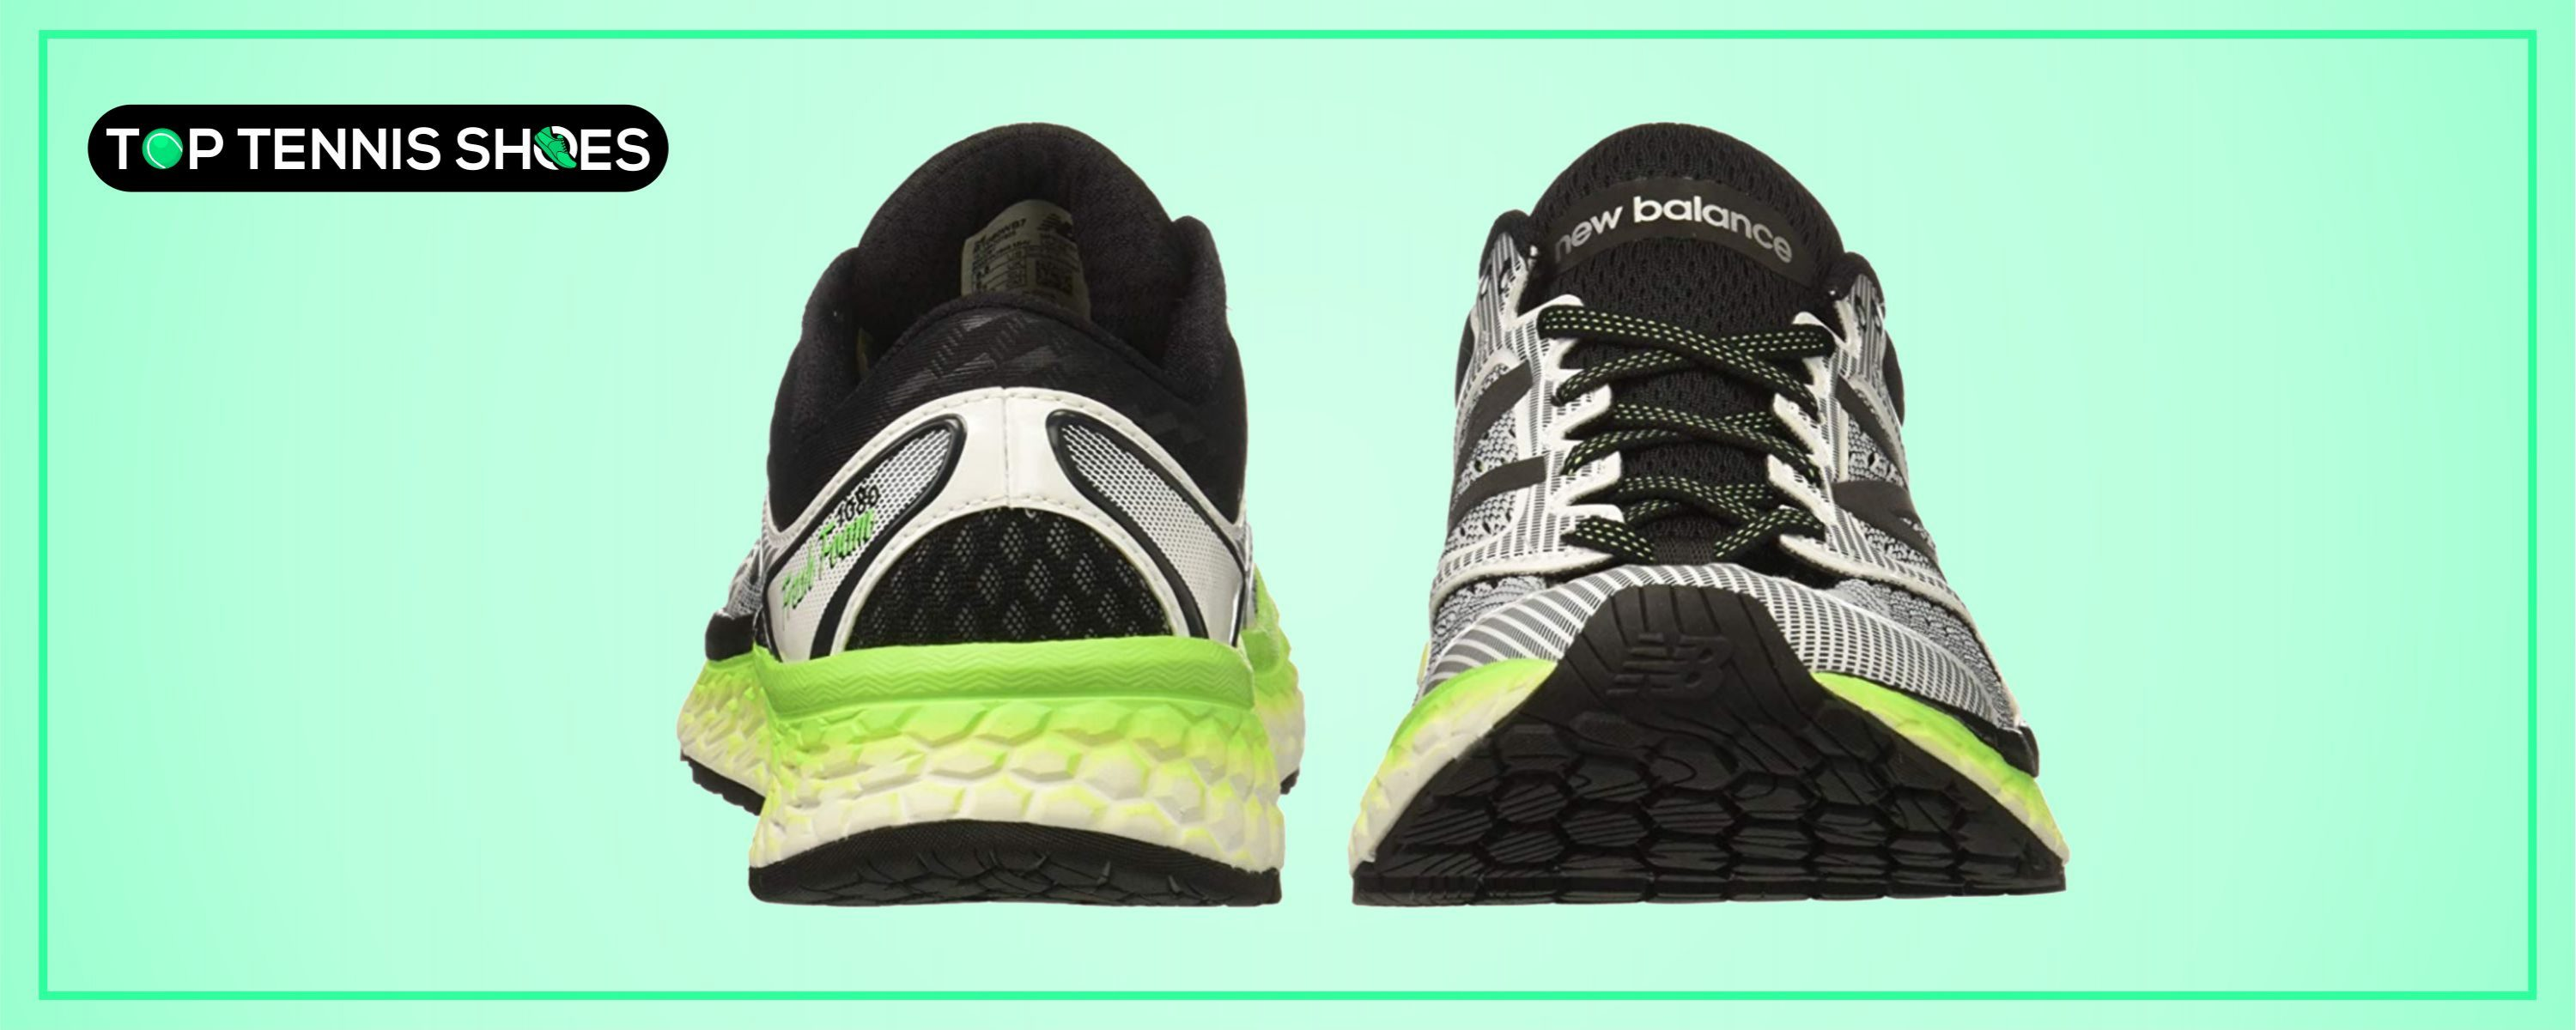 tennis shoes with good ankle support